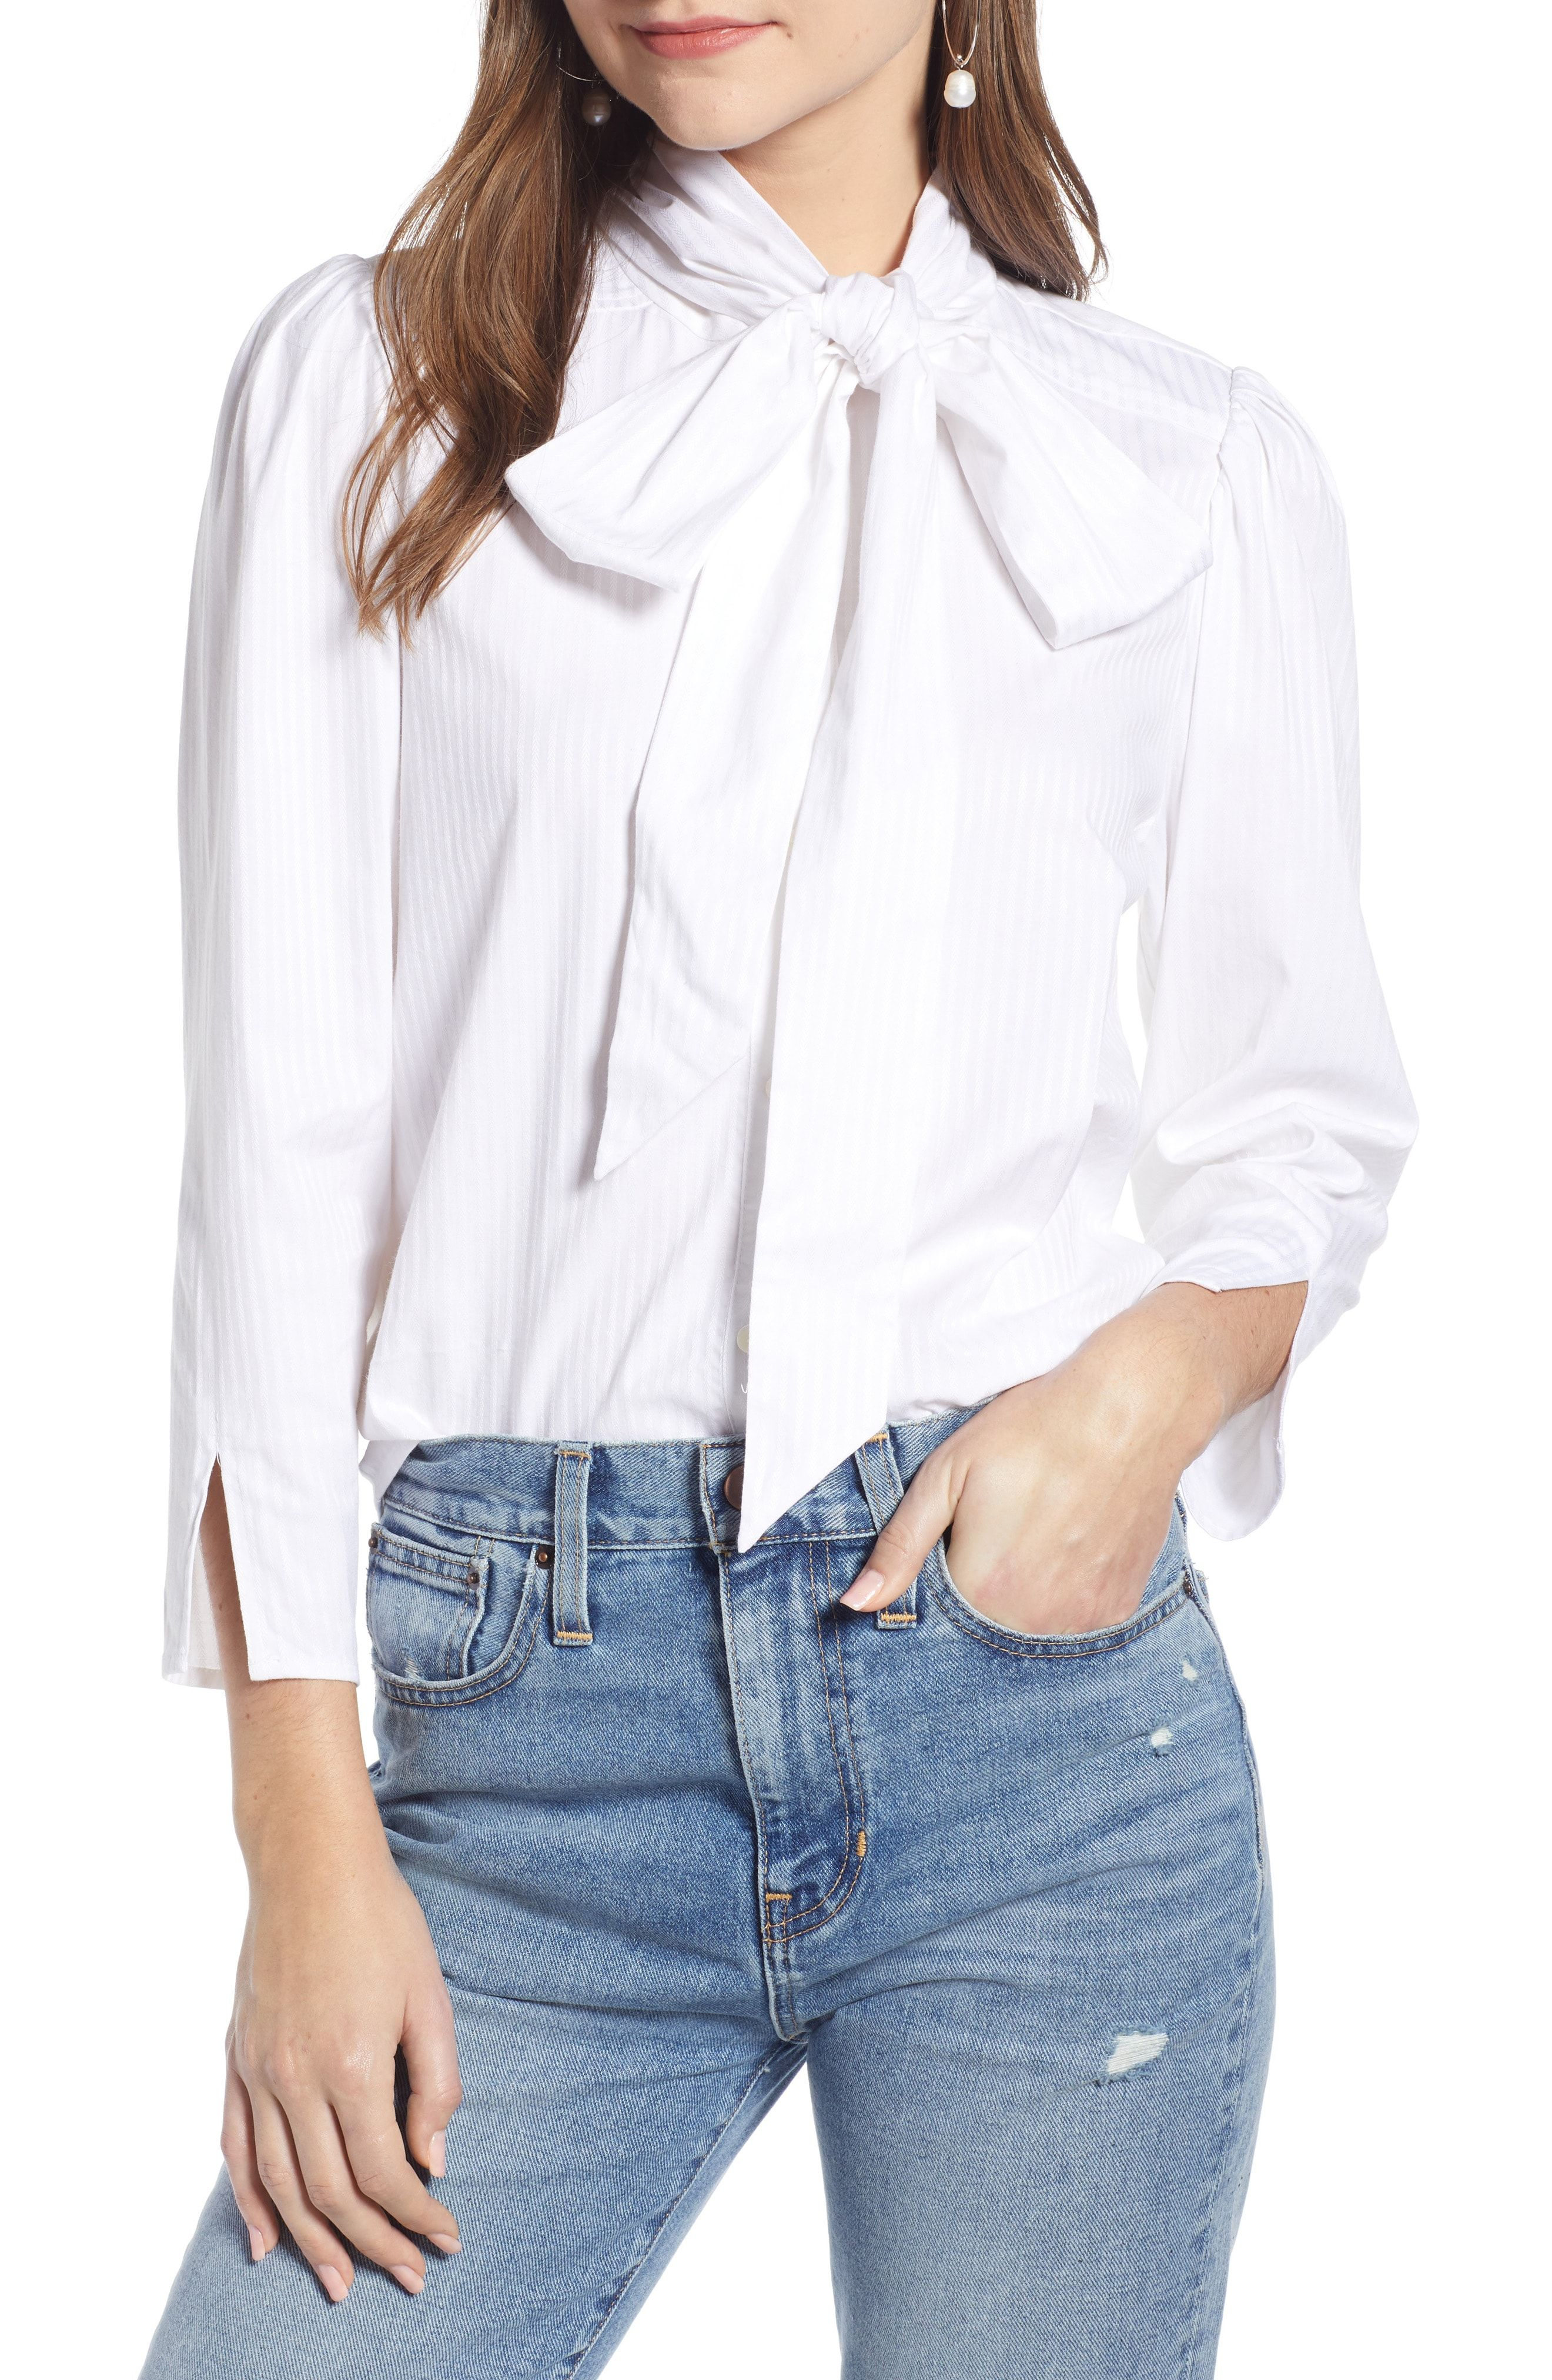 Removable Bow Top